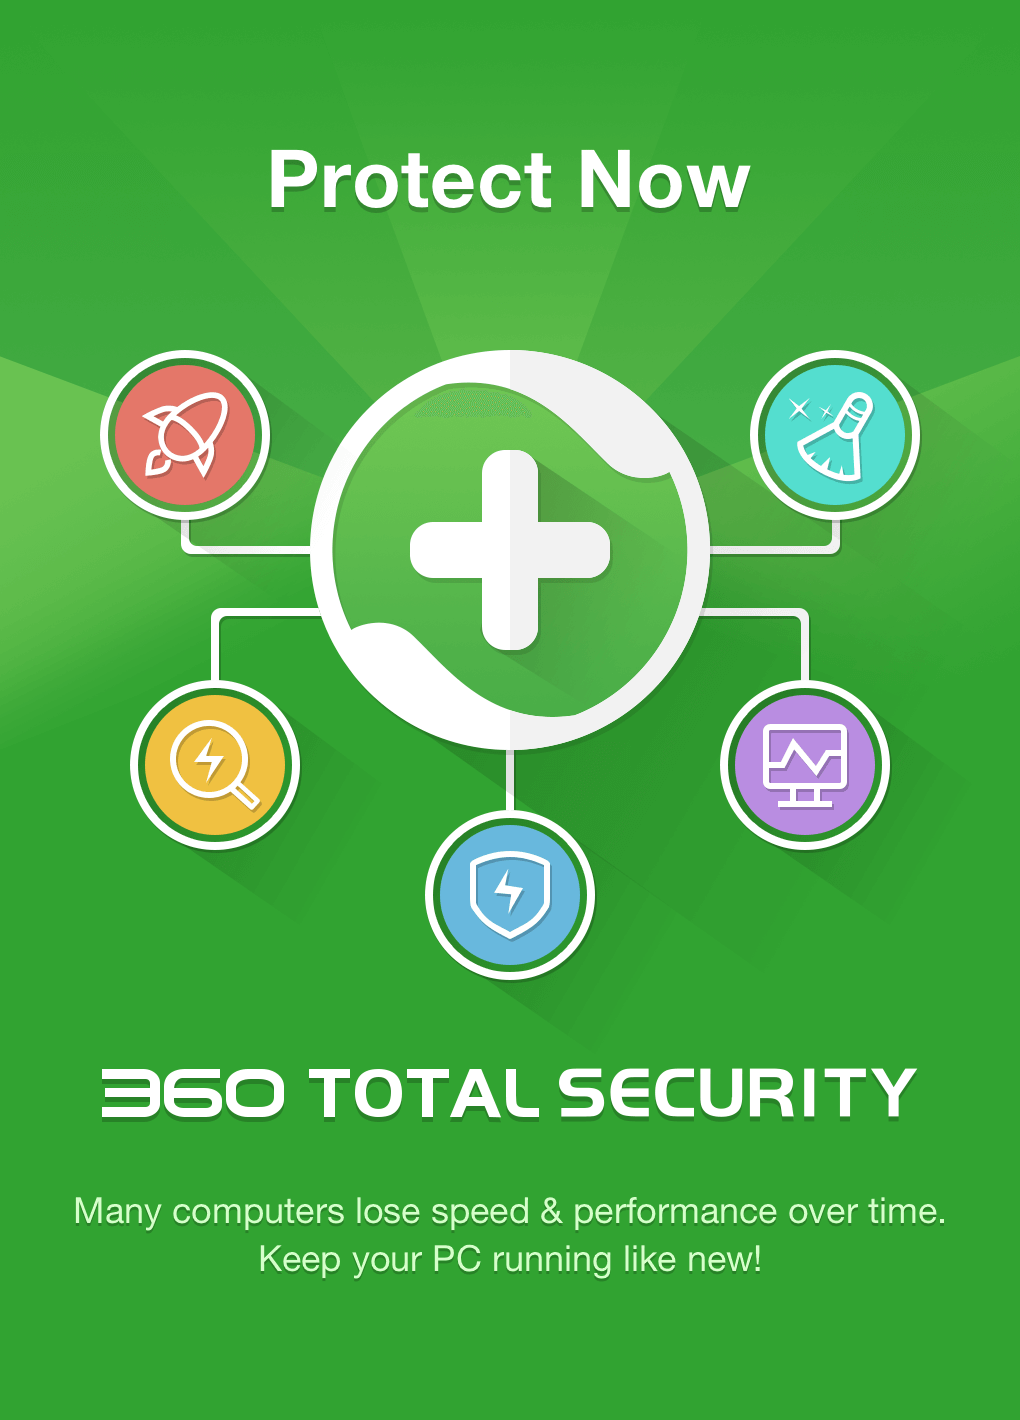 Download 360 total security antivirus software for pc – apk games hack.